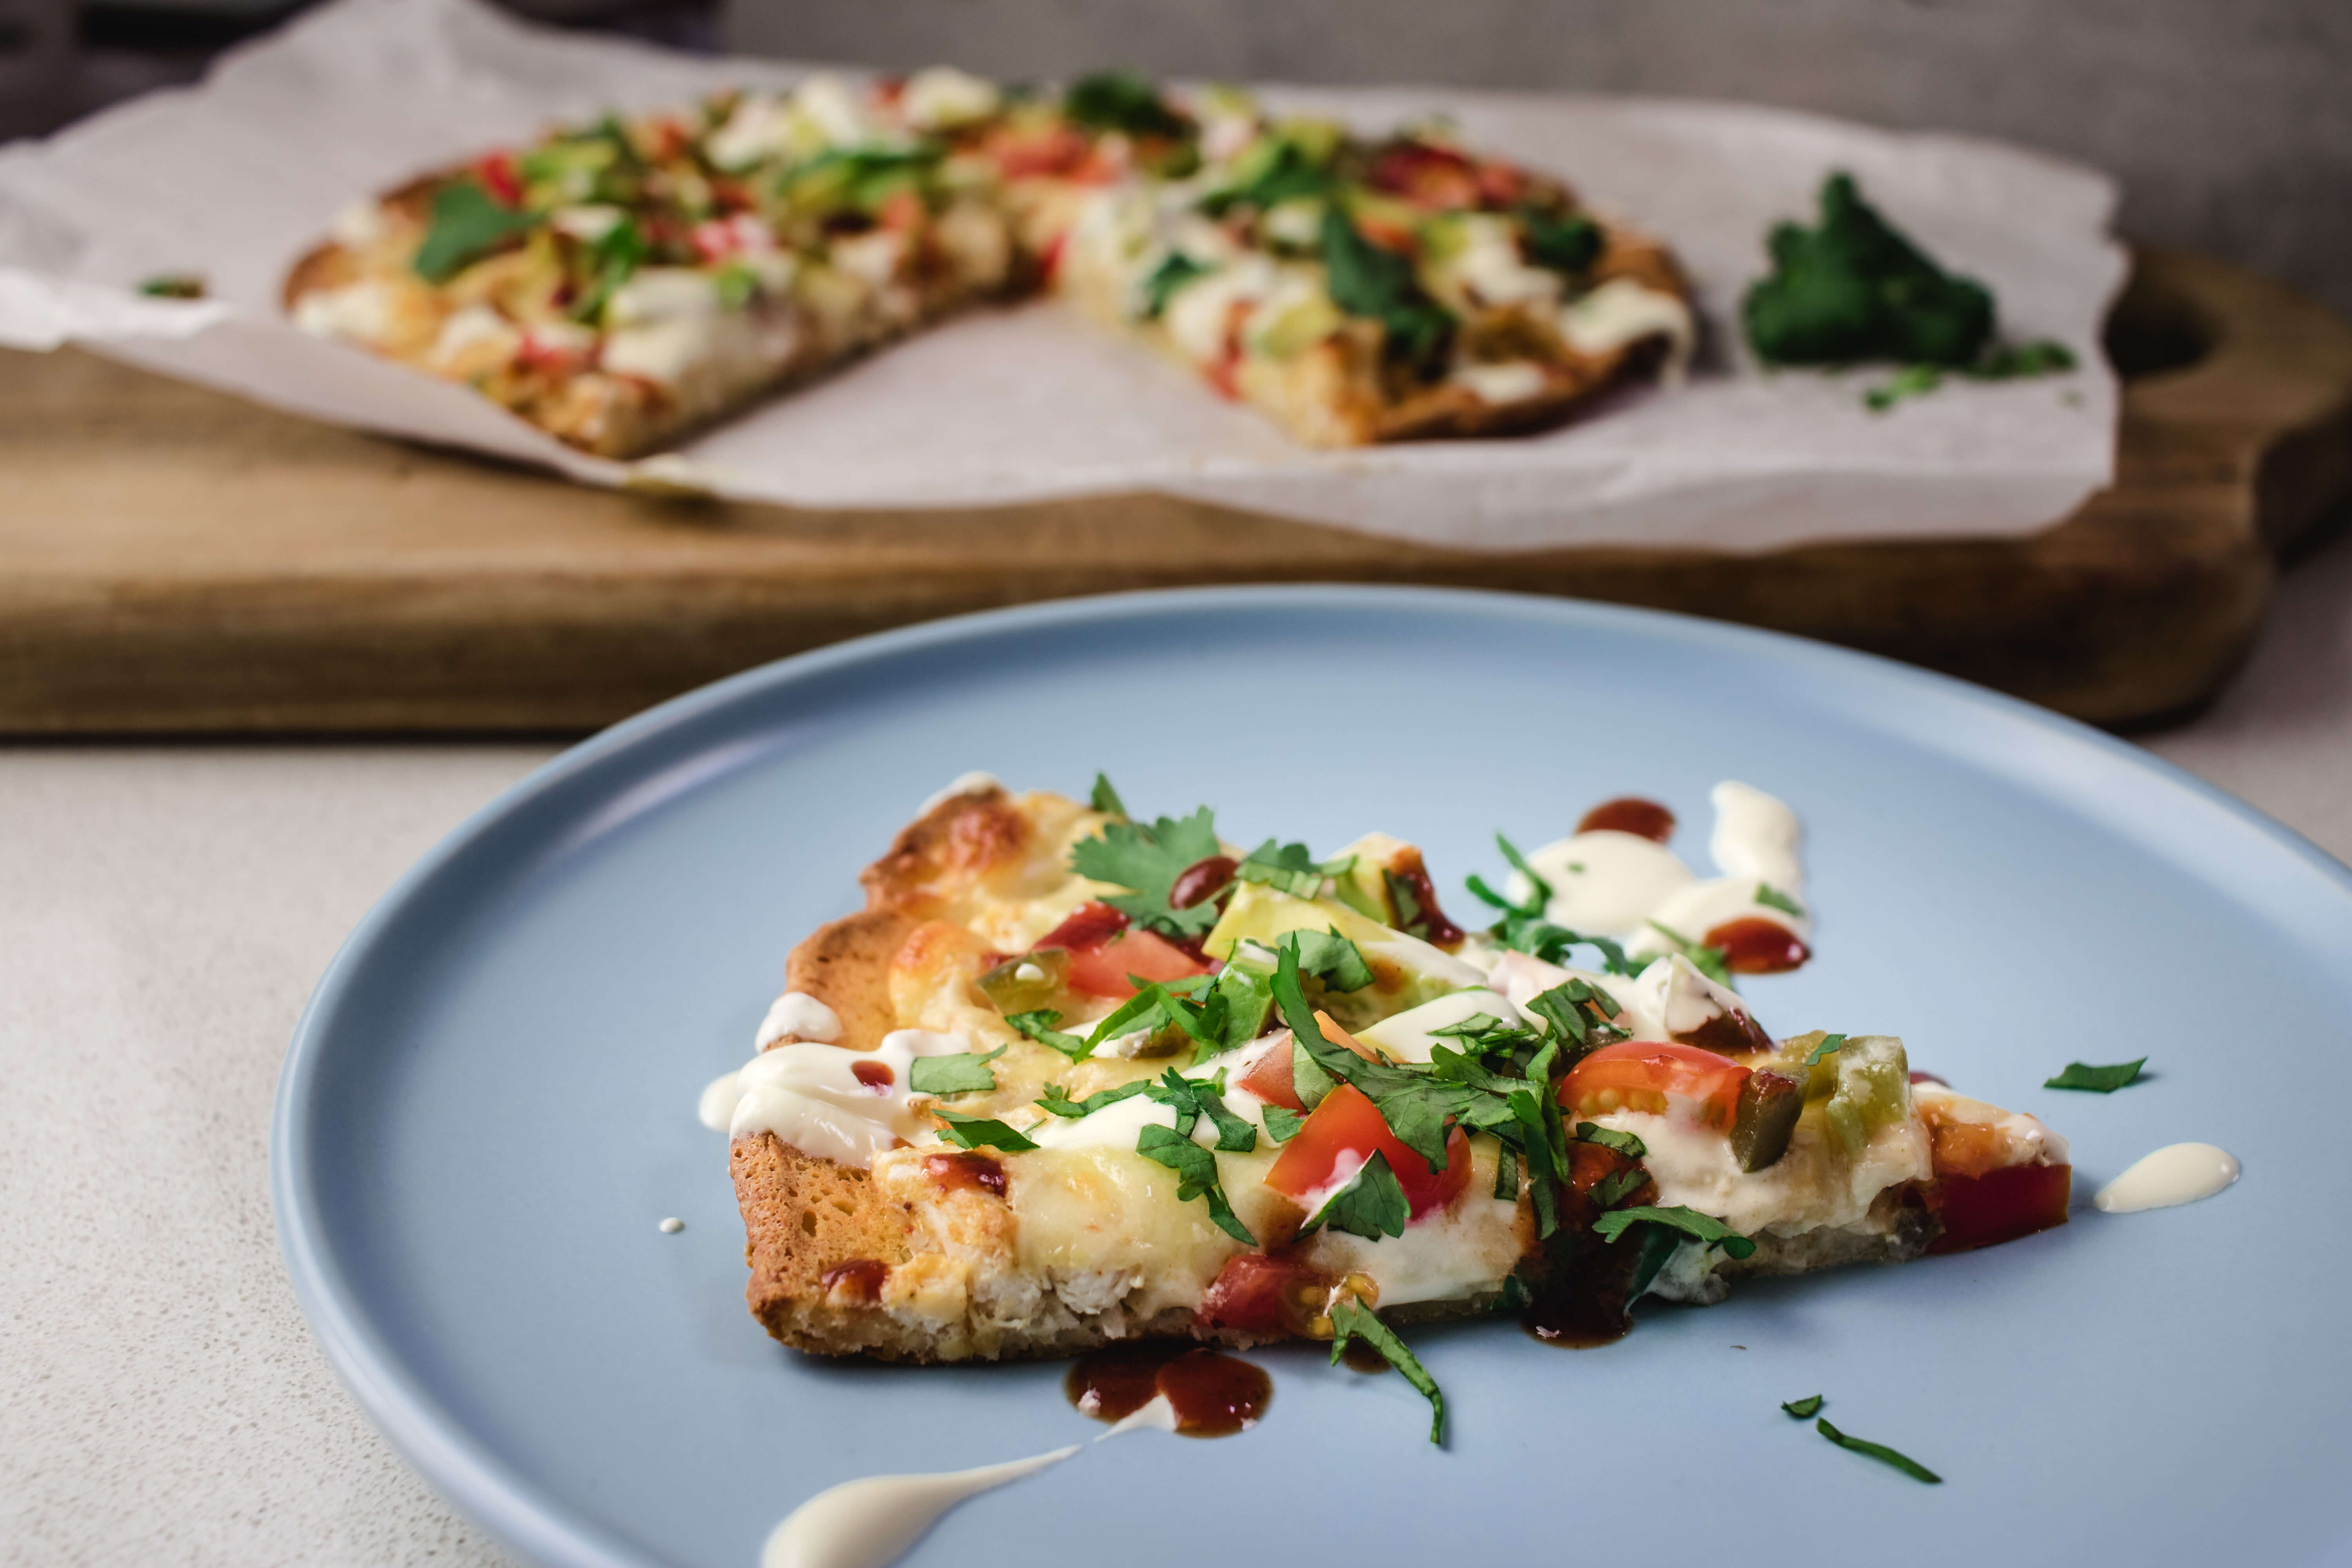 Missing pizza on your ketogenic diet? This keto chicken pizza will statisfy your pizza craving. It uses the ever popular fat head dough and is a winner.